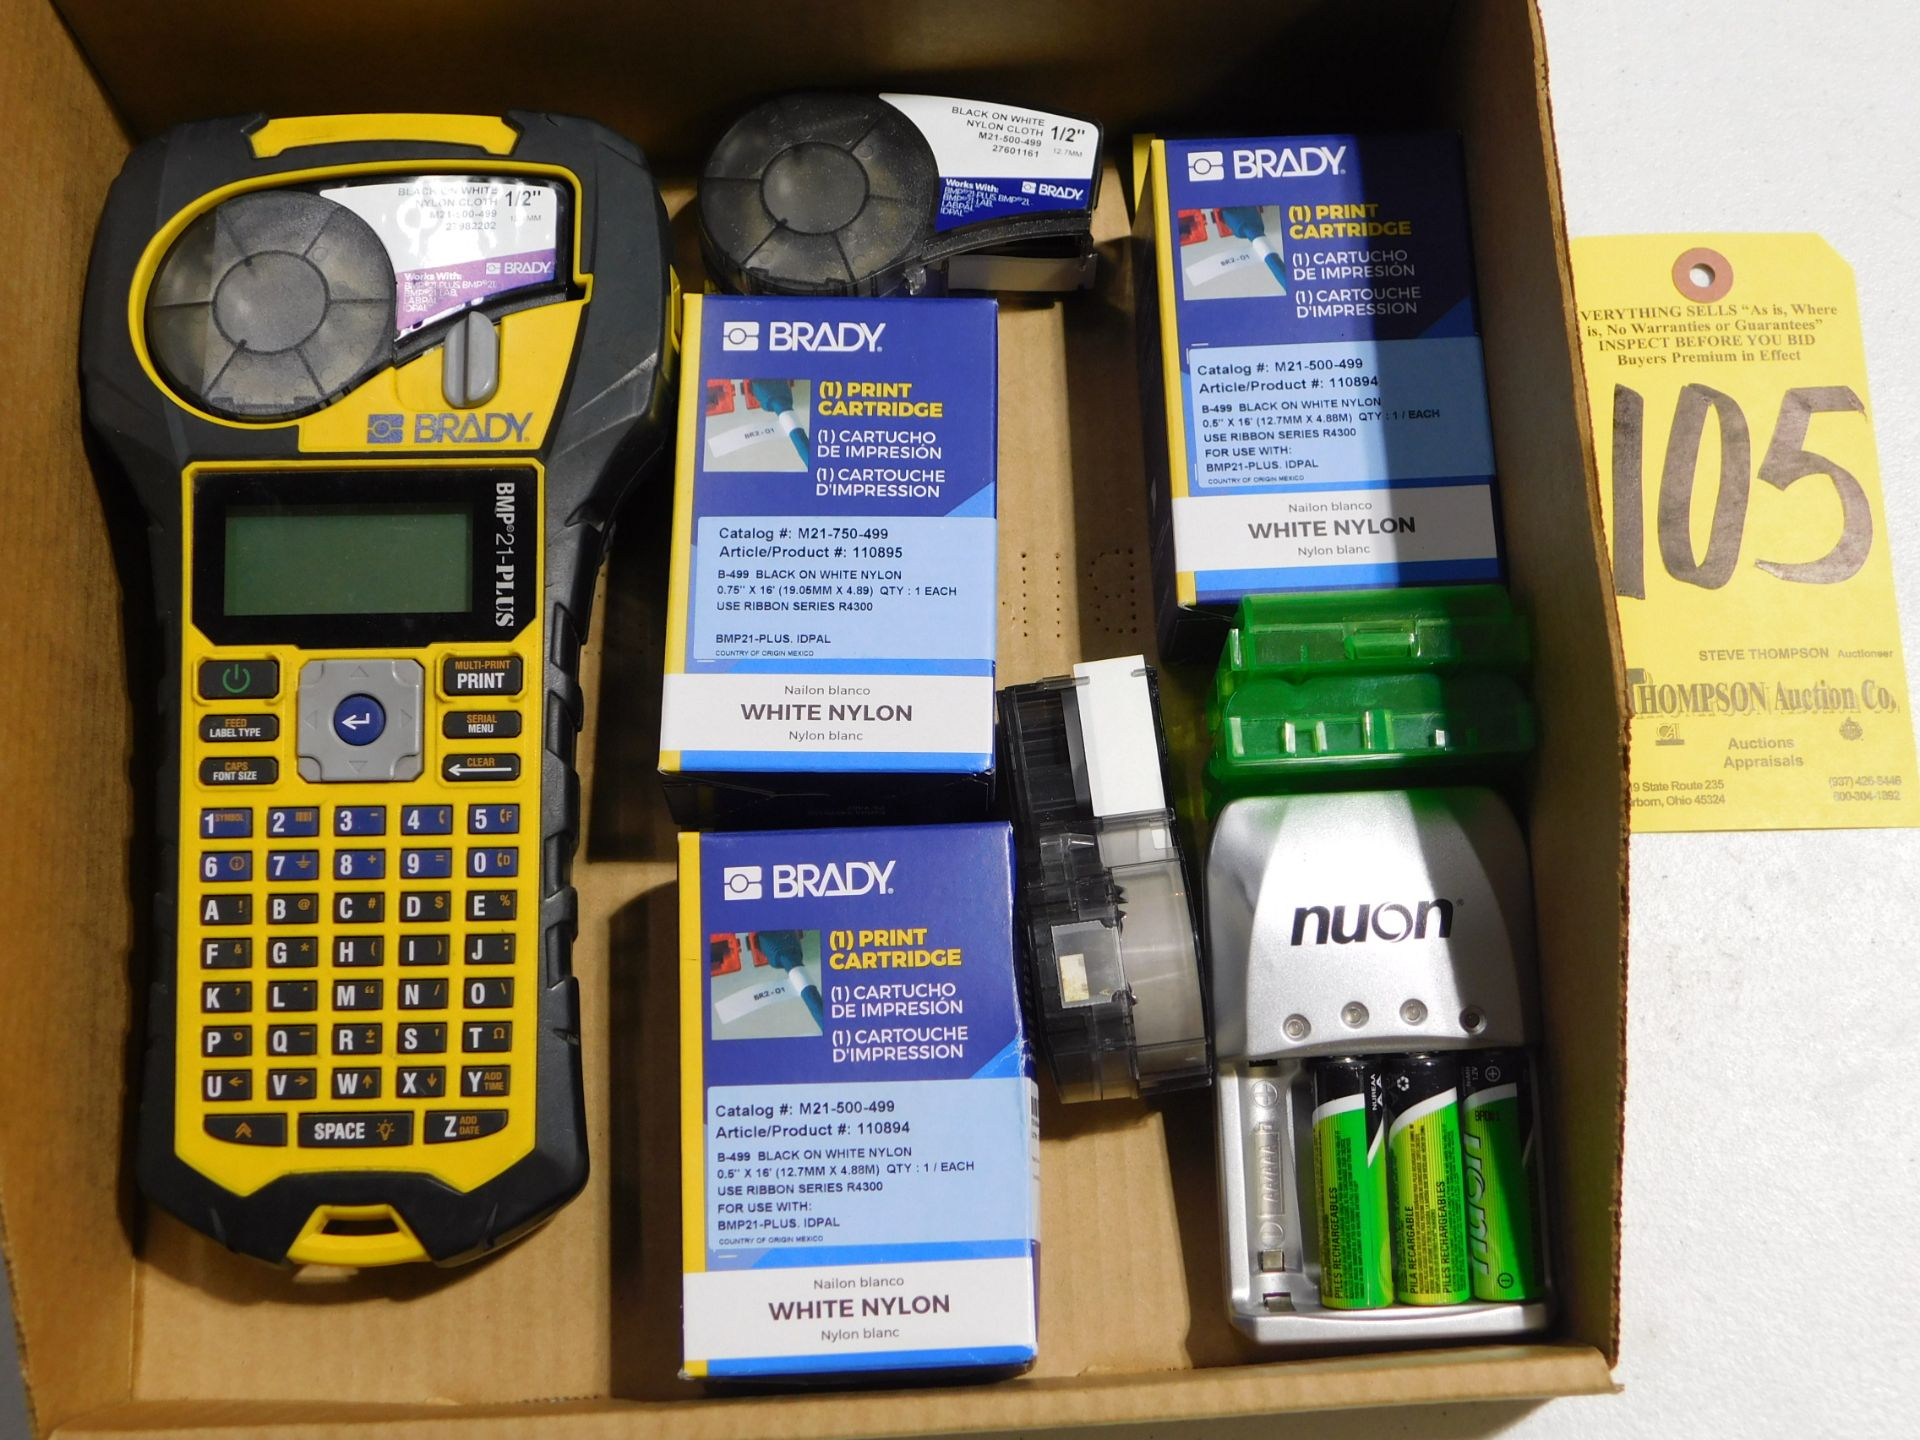 """Lot 105 - Brady BMP 21-PLUS Label Printer, 1/2"""" with Supplies, Lot Location 3204 Olympia Dr. A, Lafayette,"""